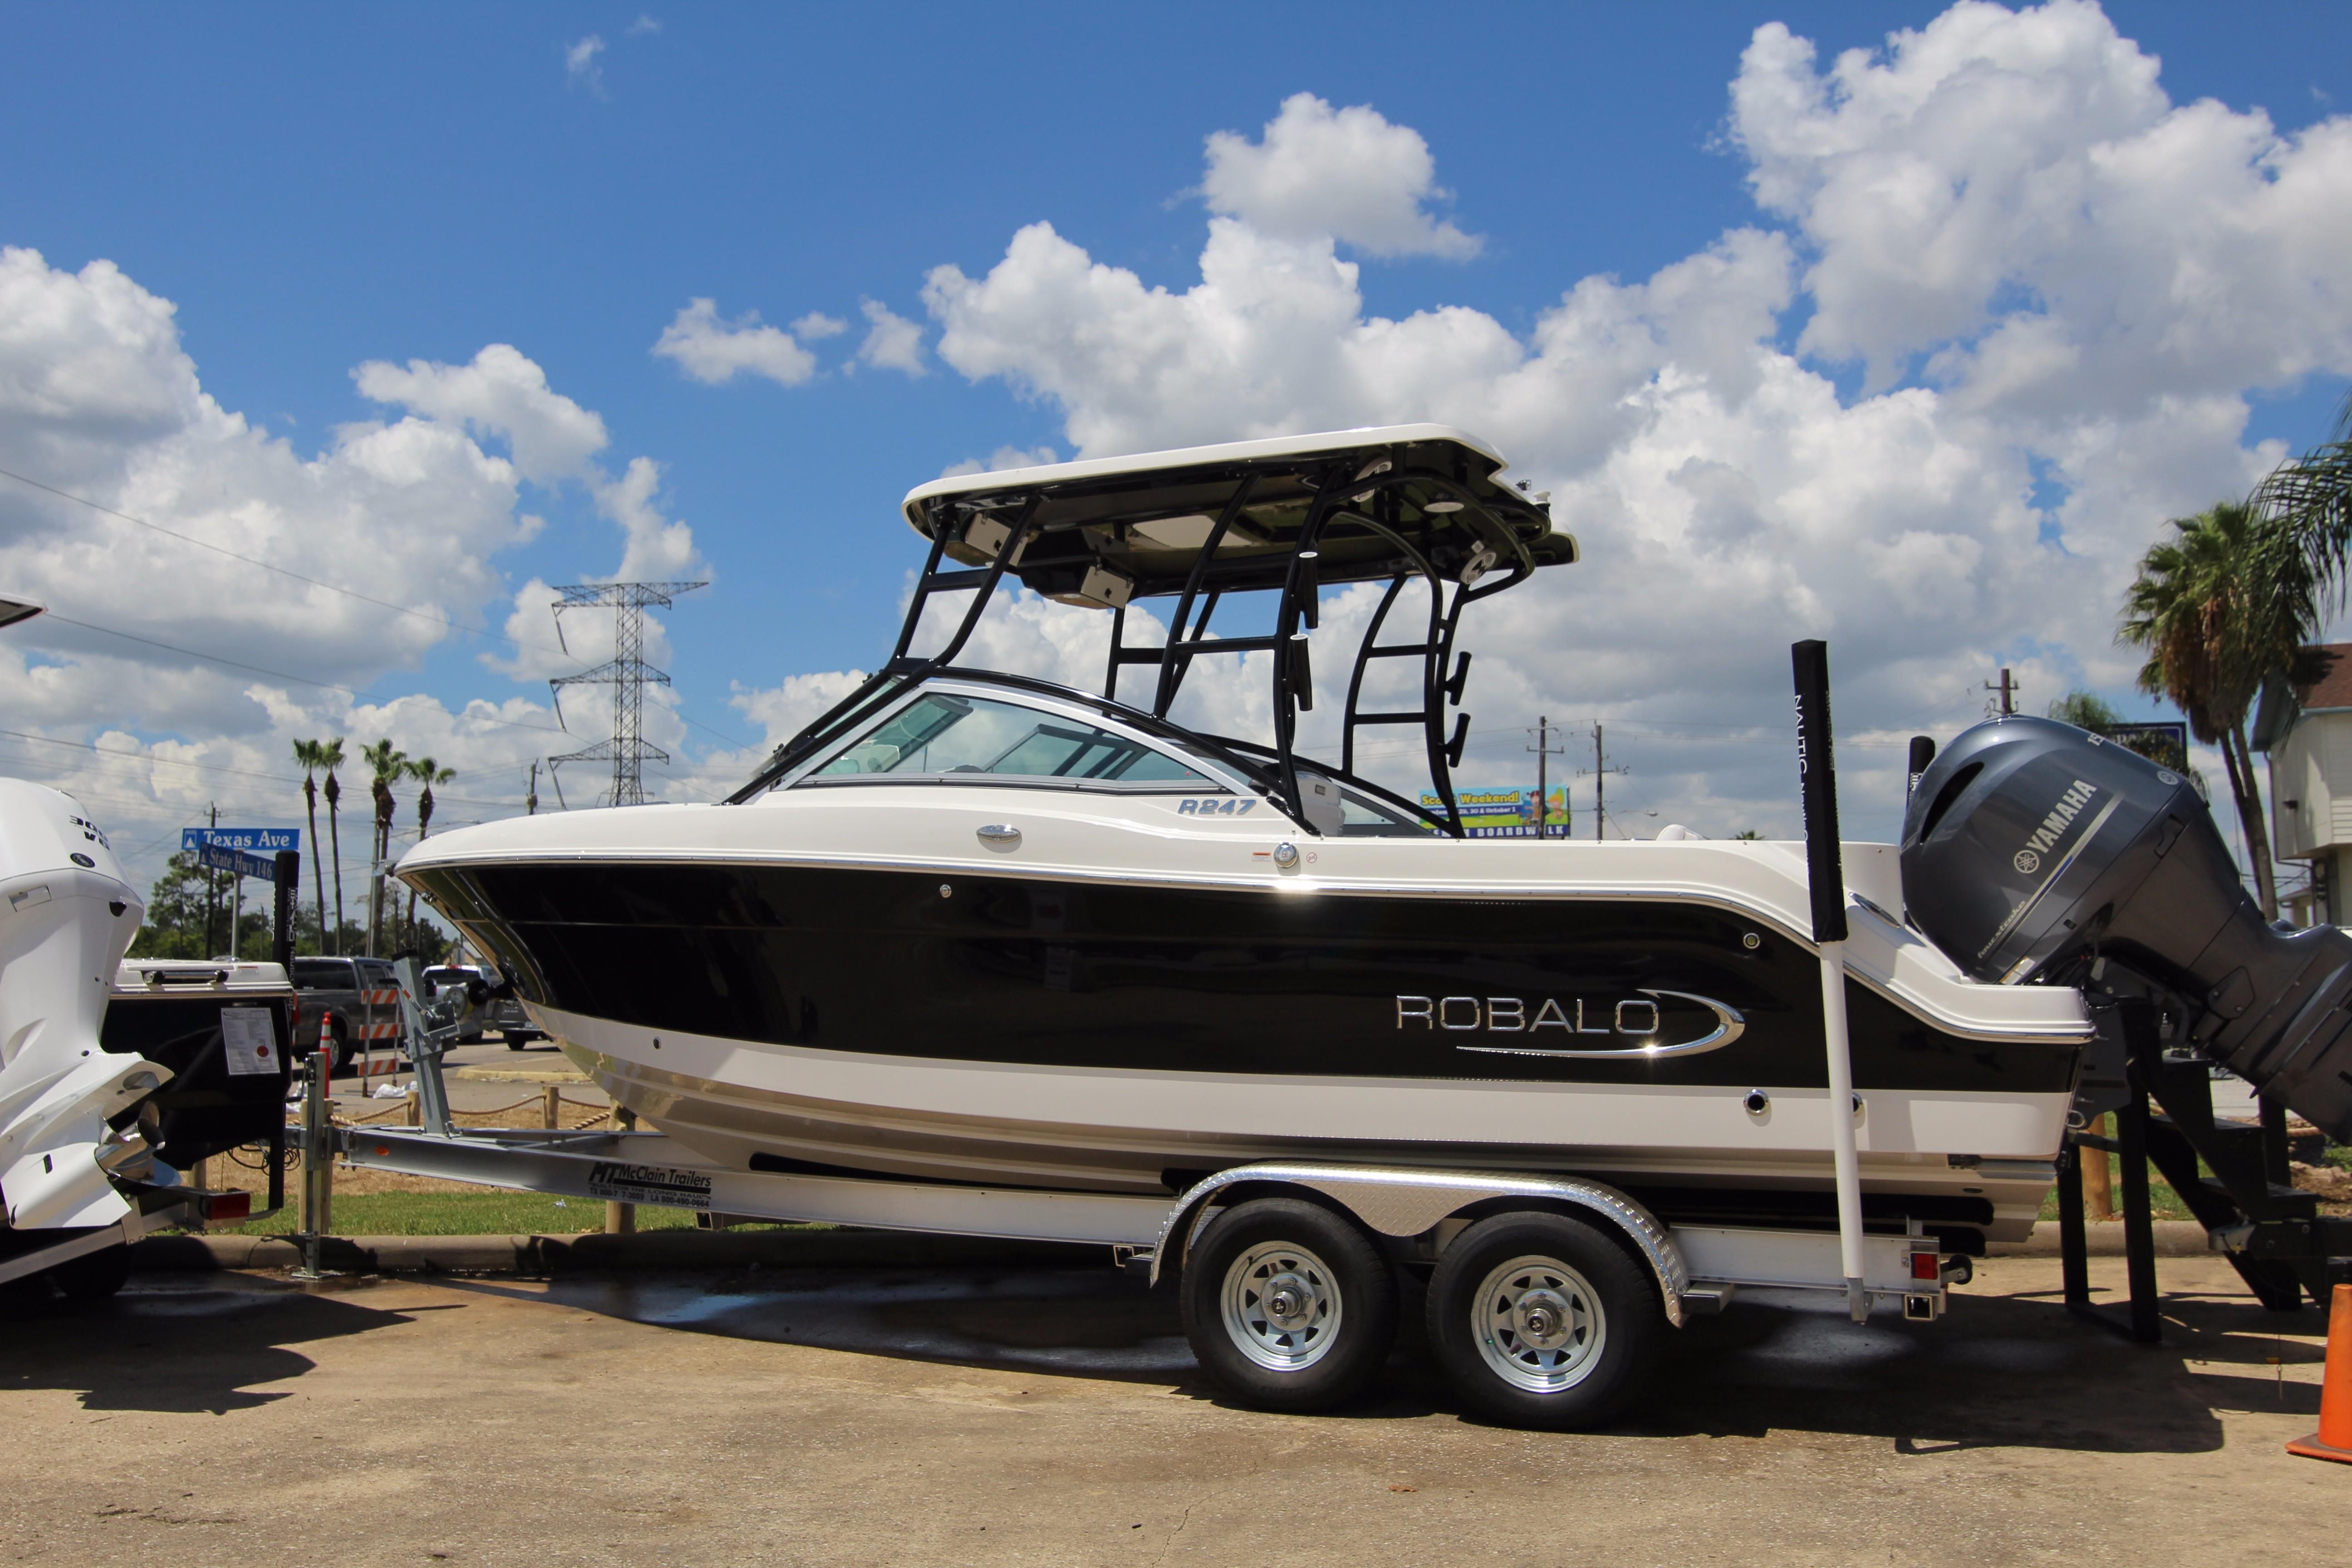 2018 robalo r247 dual console power boat for sale www for Robalo fish in english